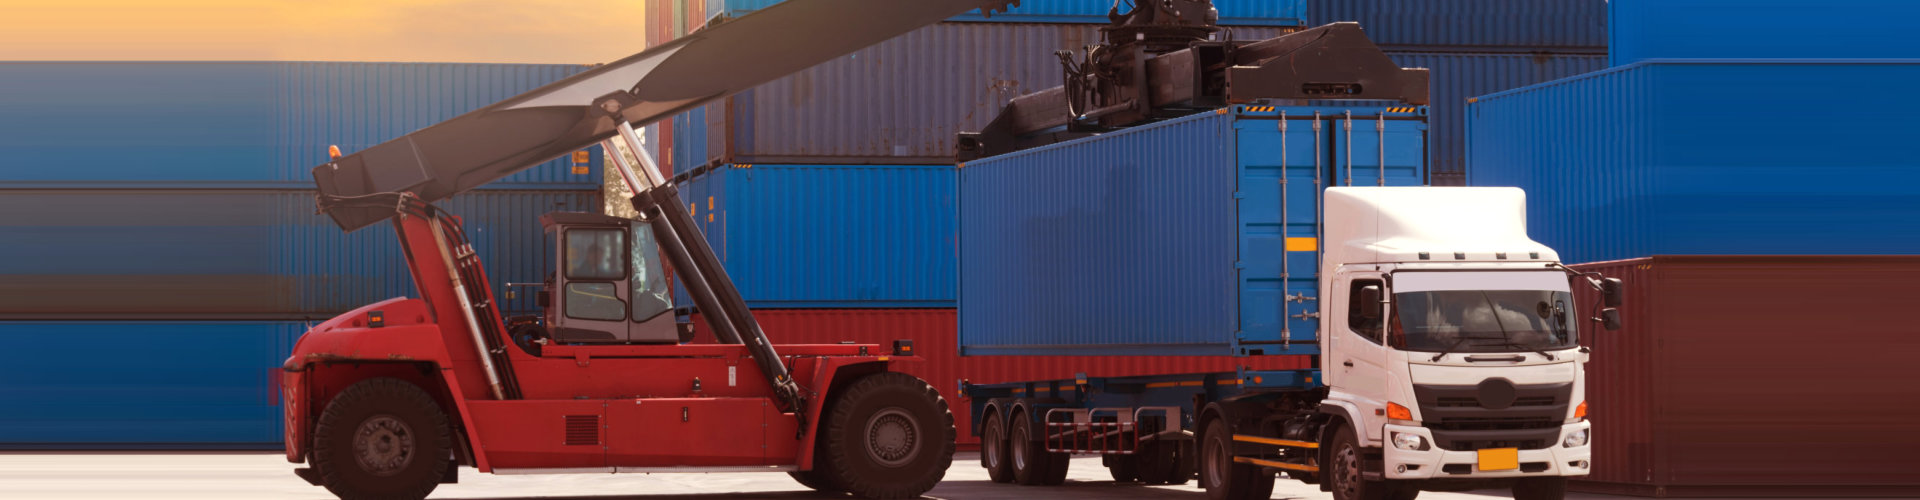 stacker is taking blue 40' high cube container to put on haulage chassis inside container